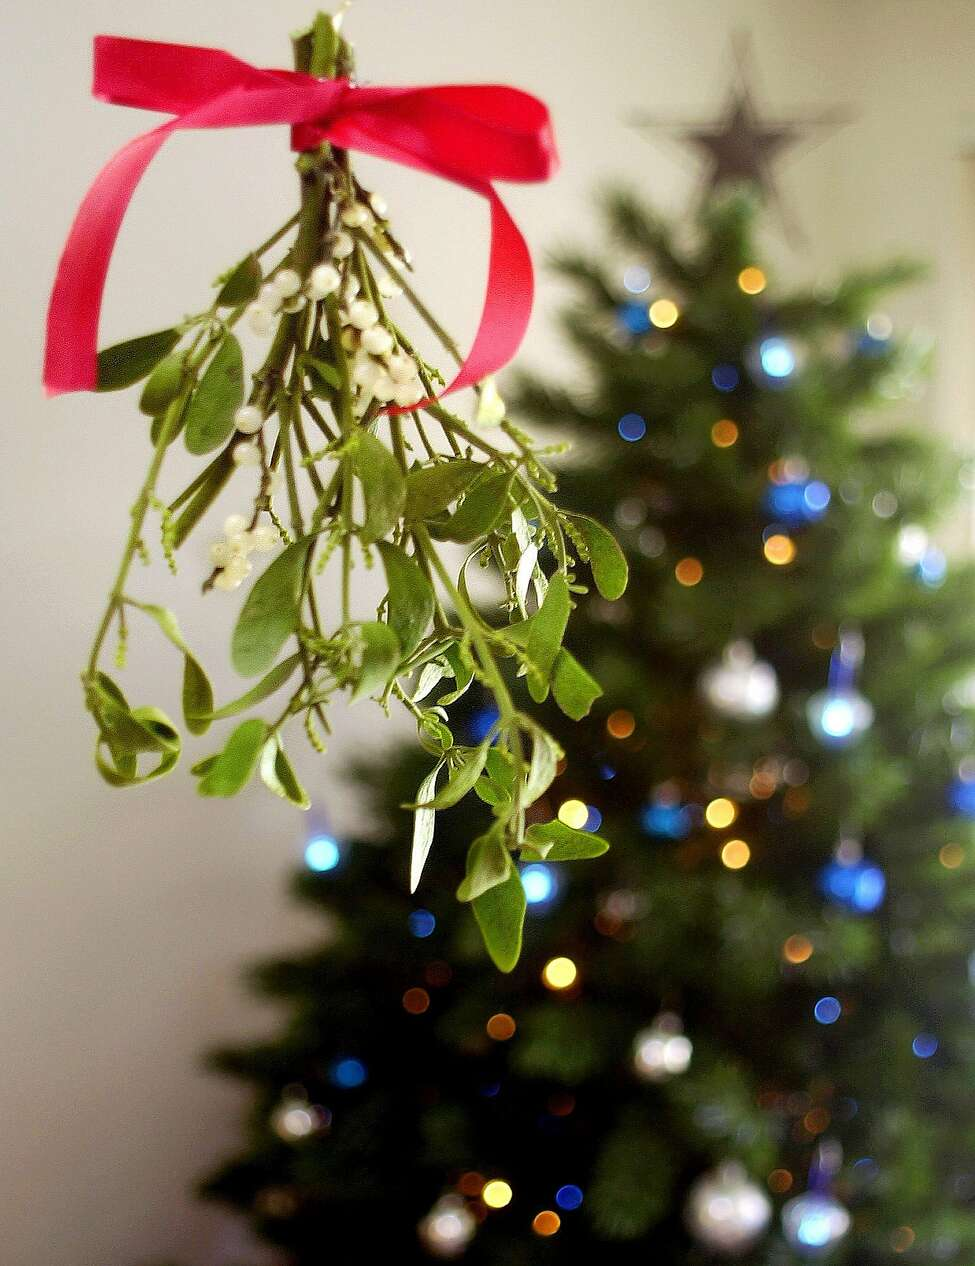 A sprig of mistletoe hangs as decoration for the holiday season Thursday, Dec. 20, 2001 in Phoenix. Known as the tiny branch that couples kiss under, few people know that mistletoe can be a kiss of death for humans and some trees. Mistletoe berries are poisonous and can bring about stomach cramps, vomiting, diarrhea and, in some cases, death if injested.